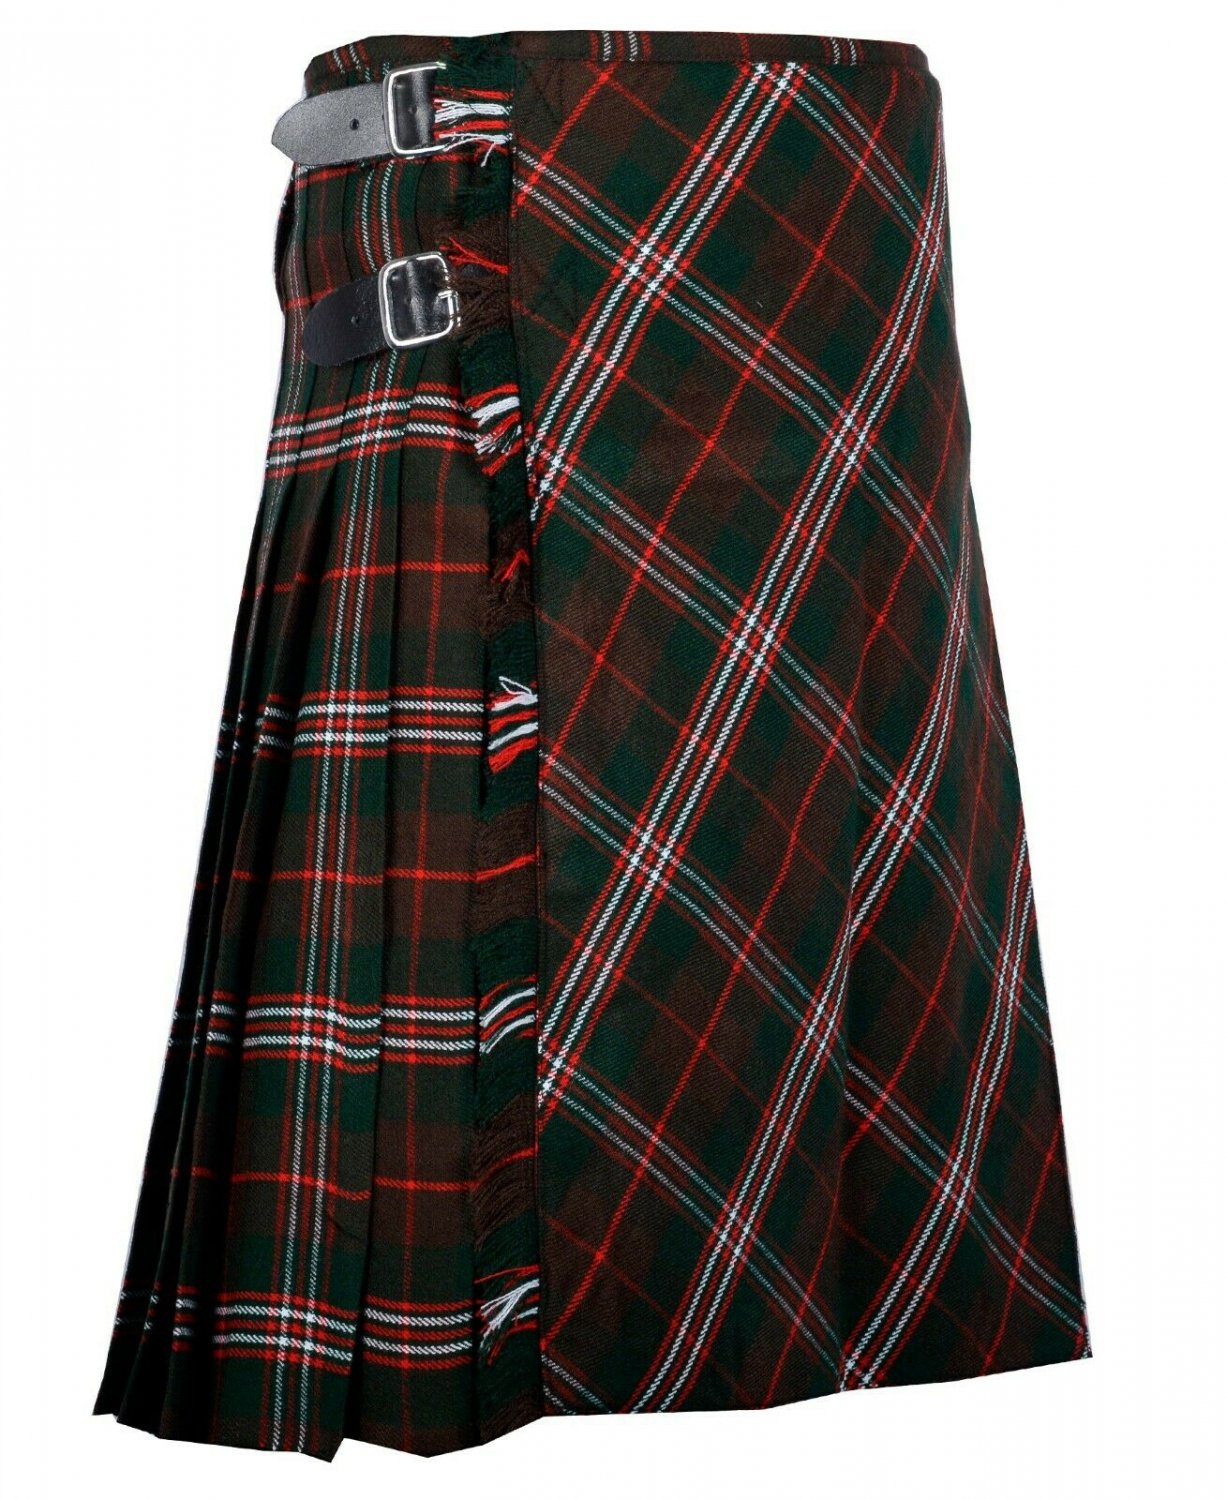 46 inches waist Bias Apron Traditional 5 Yard Scottish Kilt for Men - Scott Hunting Tartan